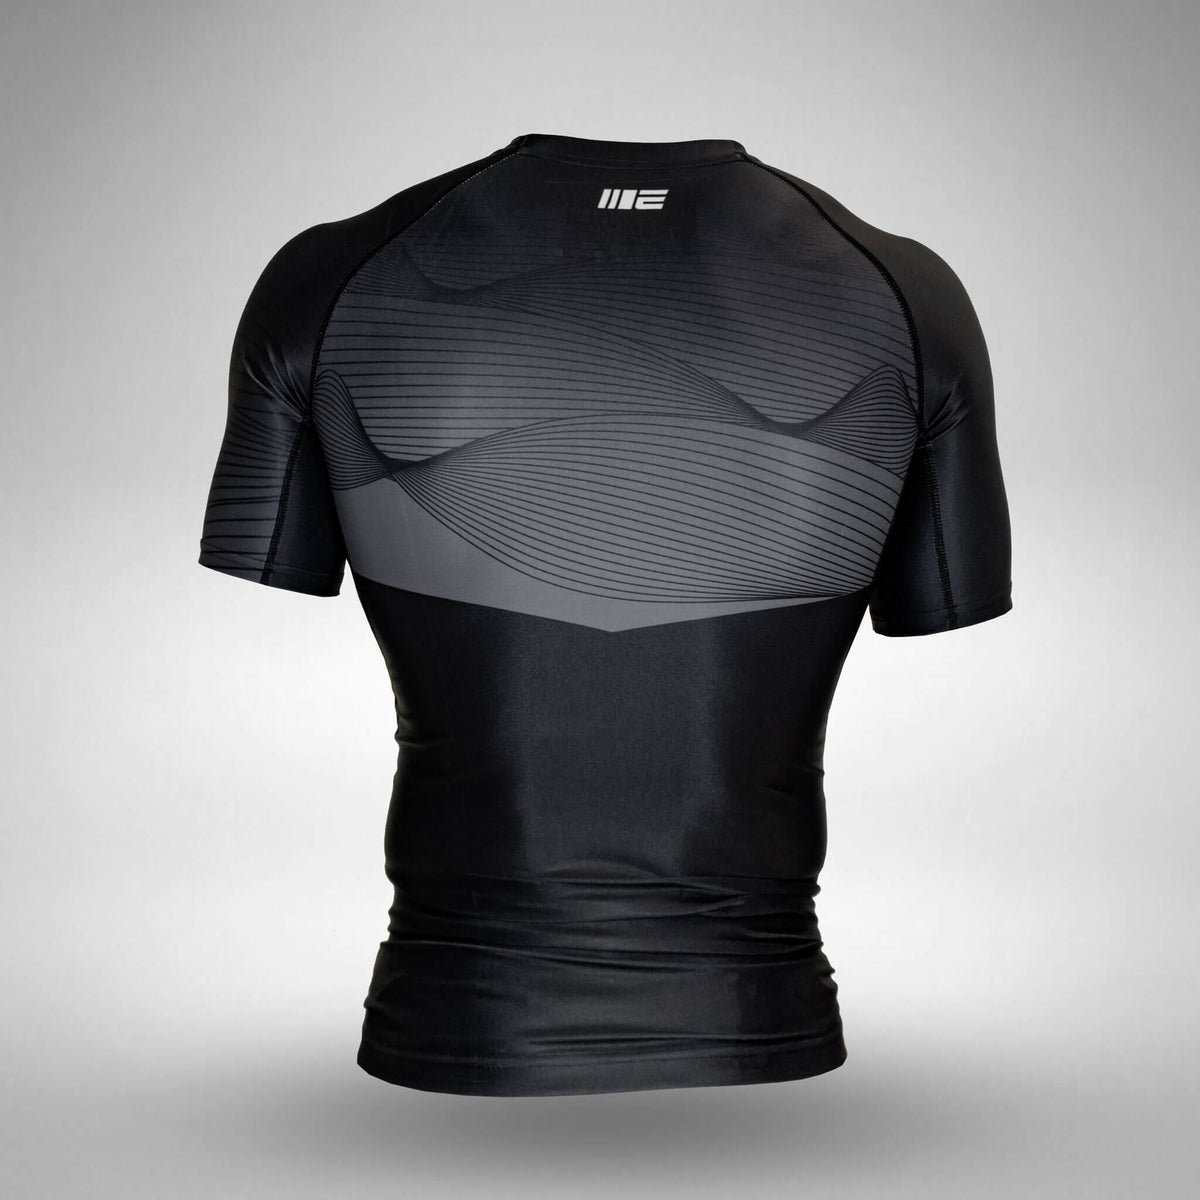 Engage Competition Graded Short Sleeve Rash Guards Competition Graded Rash Guards Engage MMA Online Fight Store for Apparel, Fightwear and Fight Gear Equipment